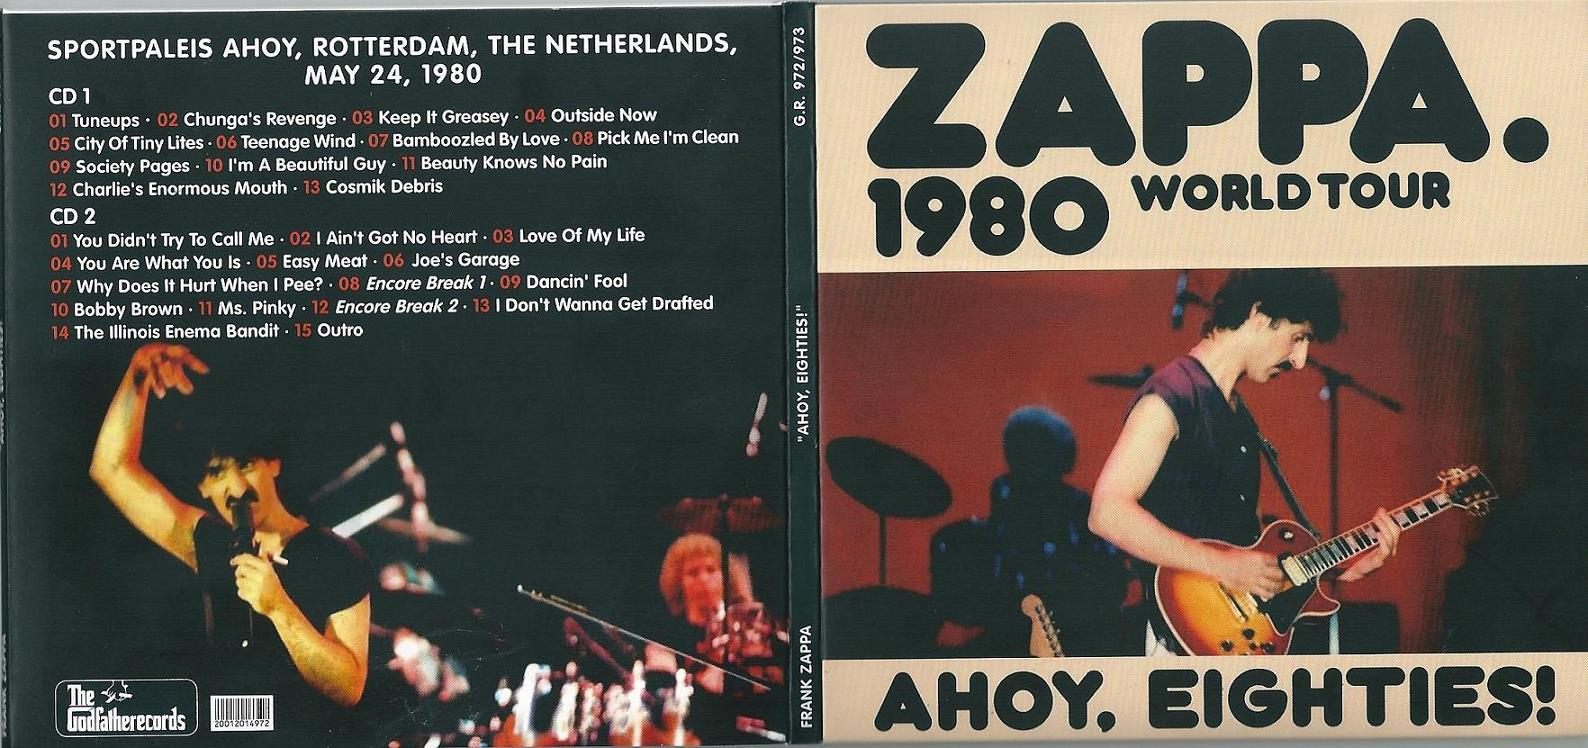 1980-05-24-AHOY,EIGHTIES!-digipack-ext-1-2